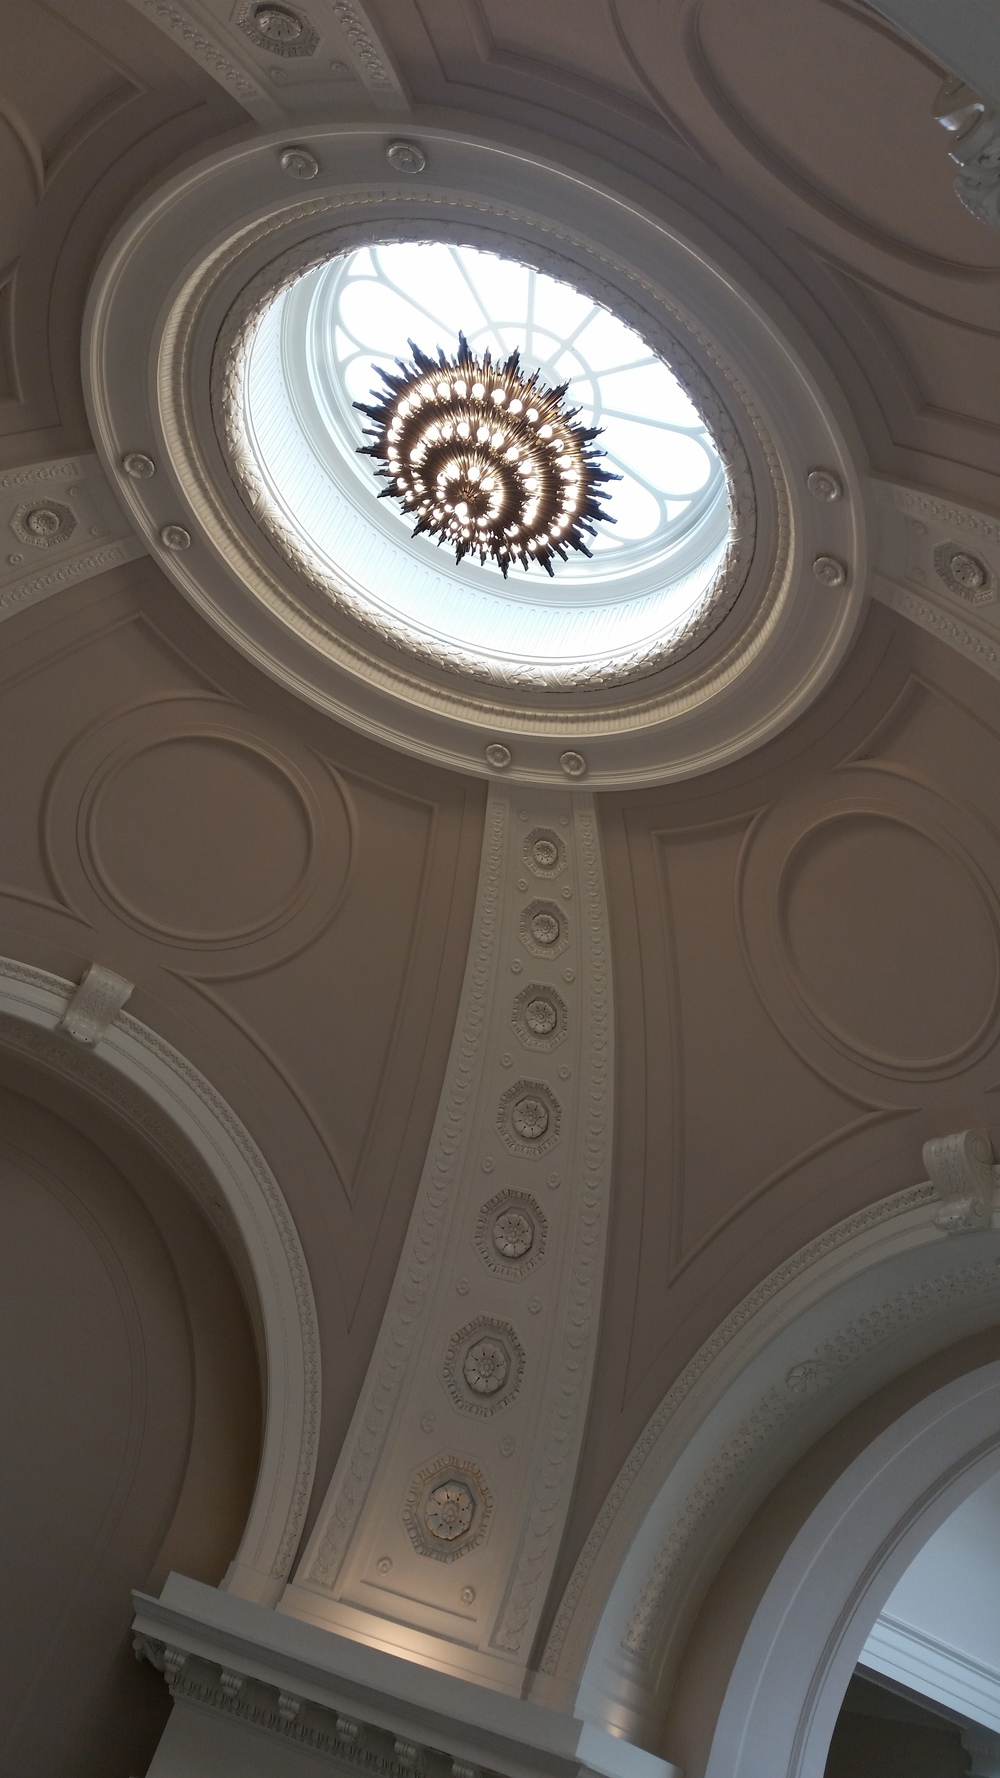 The ceiling of the Rotunda at the Carnegie Institution for Science, Washington, DC